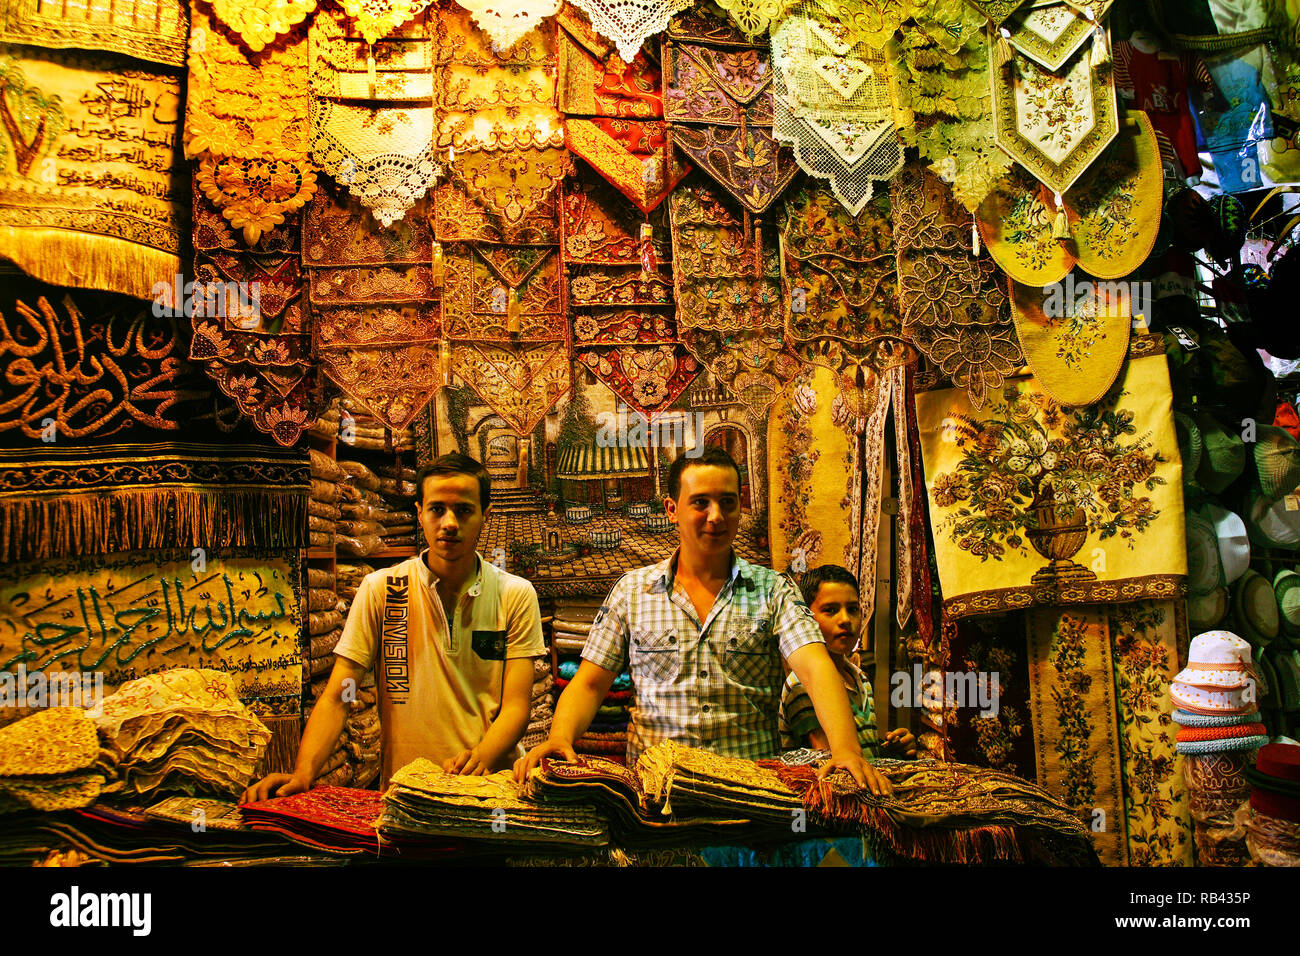 Souk Hamidiyé, Damascus. Syria, Middle East - Stock Image